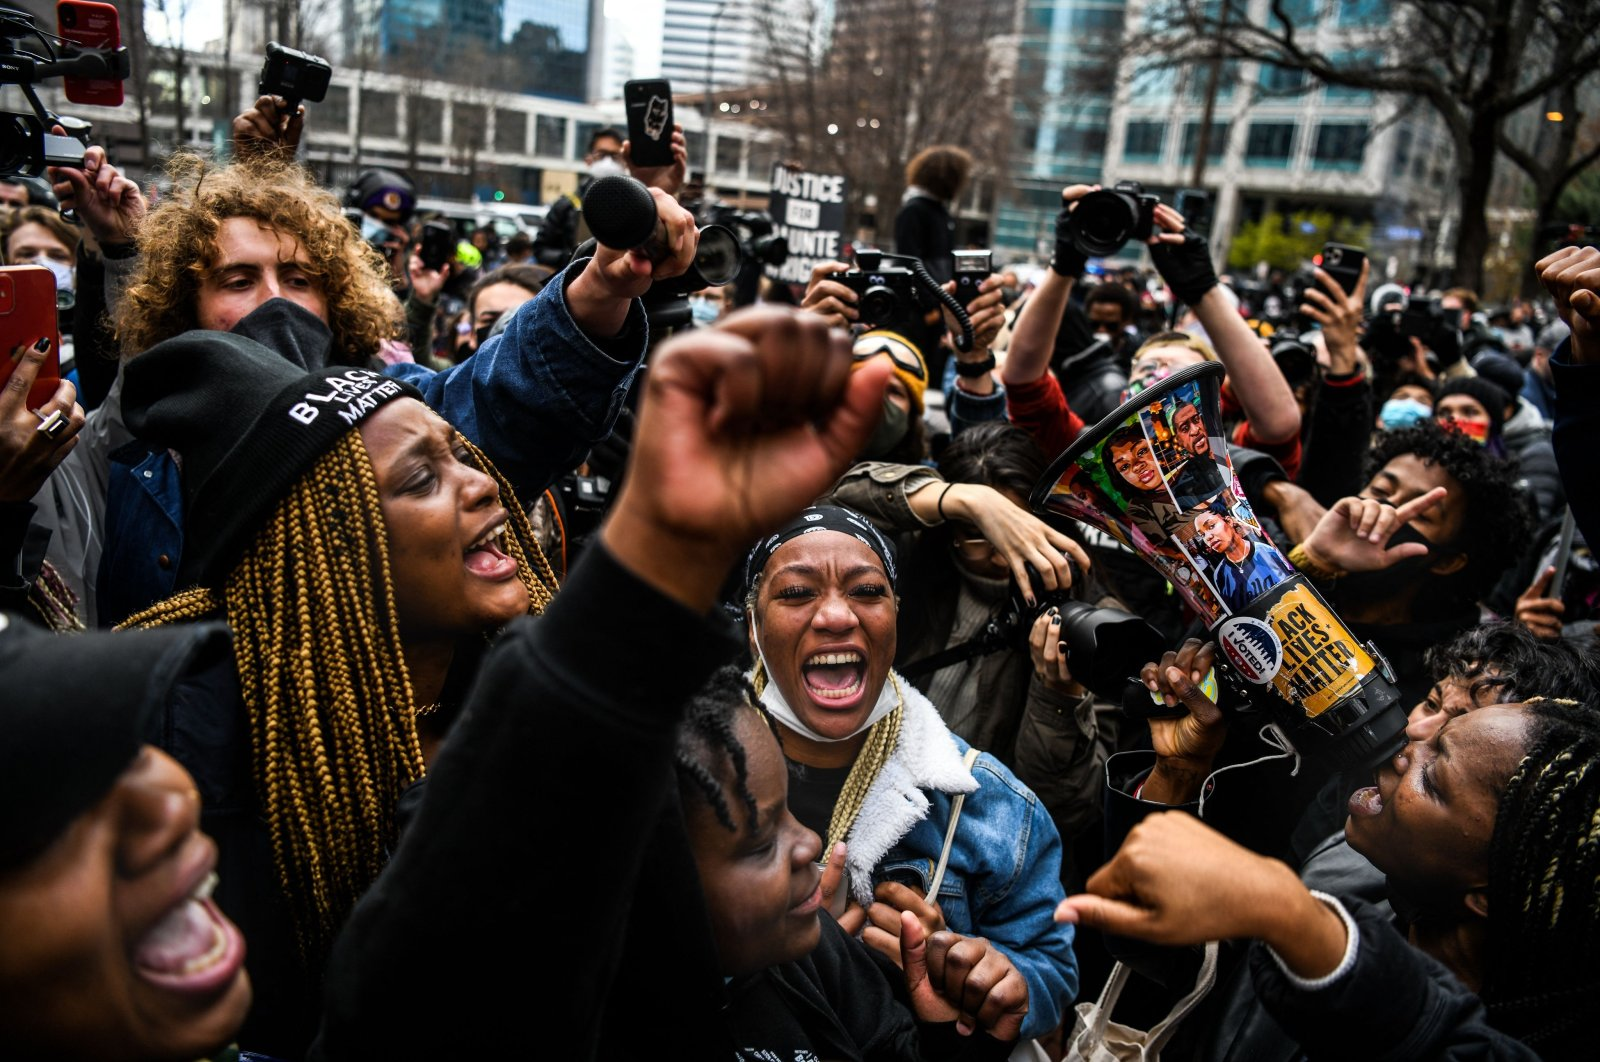 People celebrate as the verdict is announced in the trial of former police officer Derek Chauvin outside the Hennepin County Government Center in Minneapolis, Minnesota, U.S., April 20, 2021. (AFP Photo)